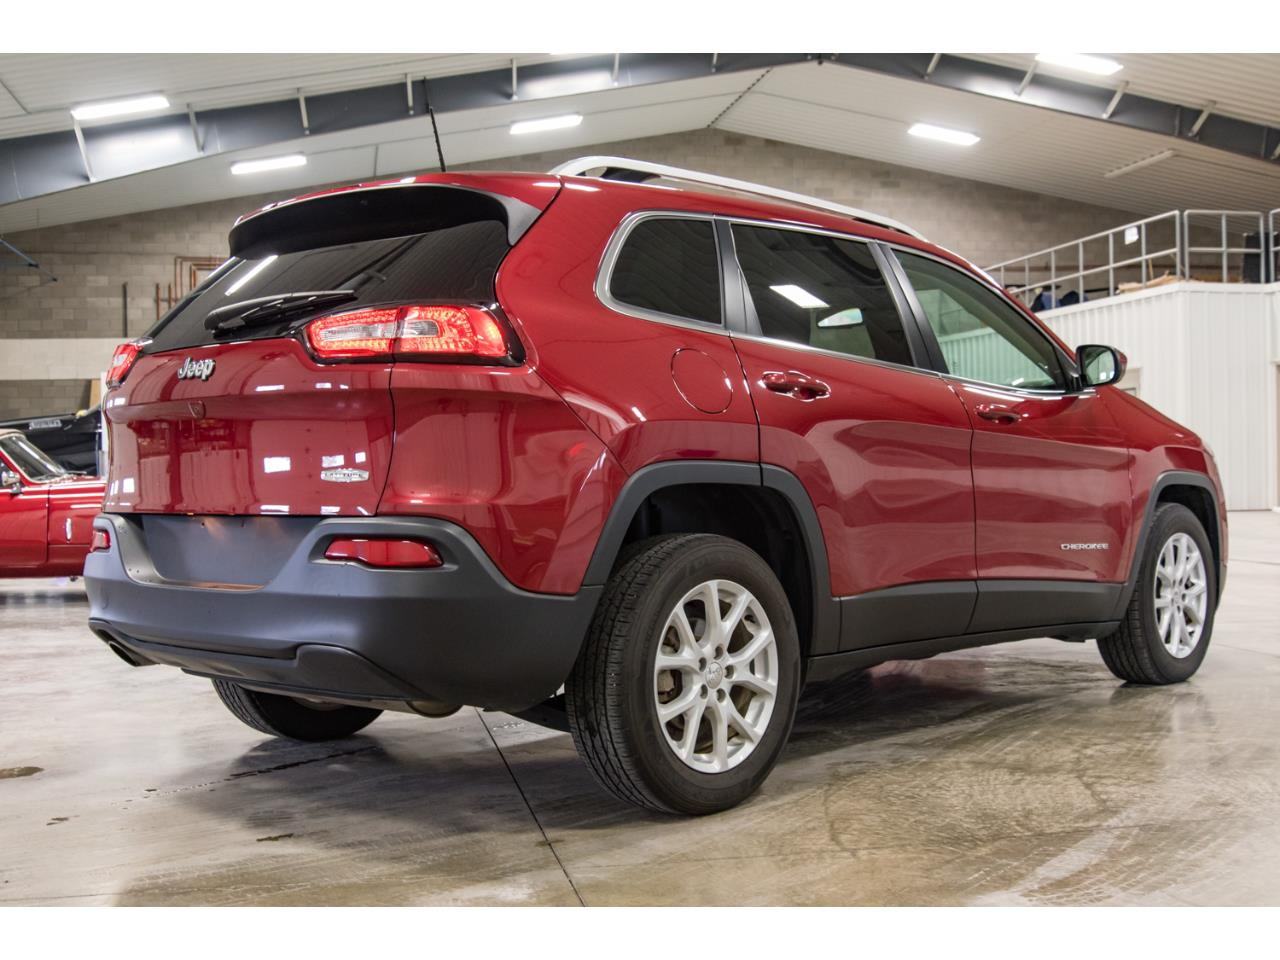 Large Picture of 2016 Jeep Cherokee located in Salem Ohio Auction Vehicle Offered by John Kufleitner's Galleria - MJWQ